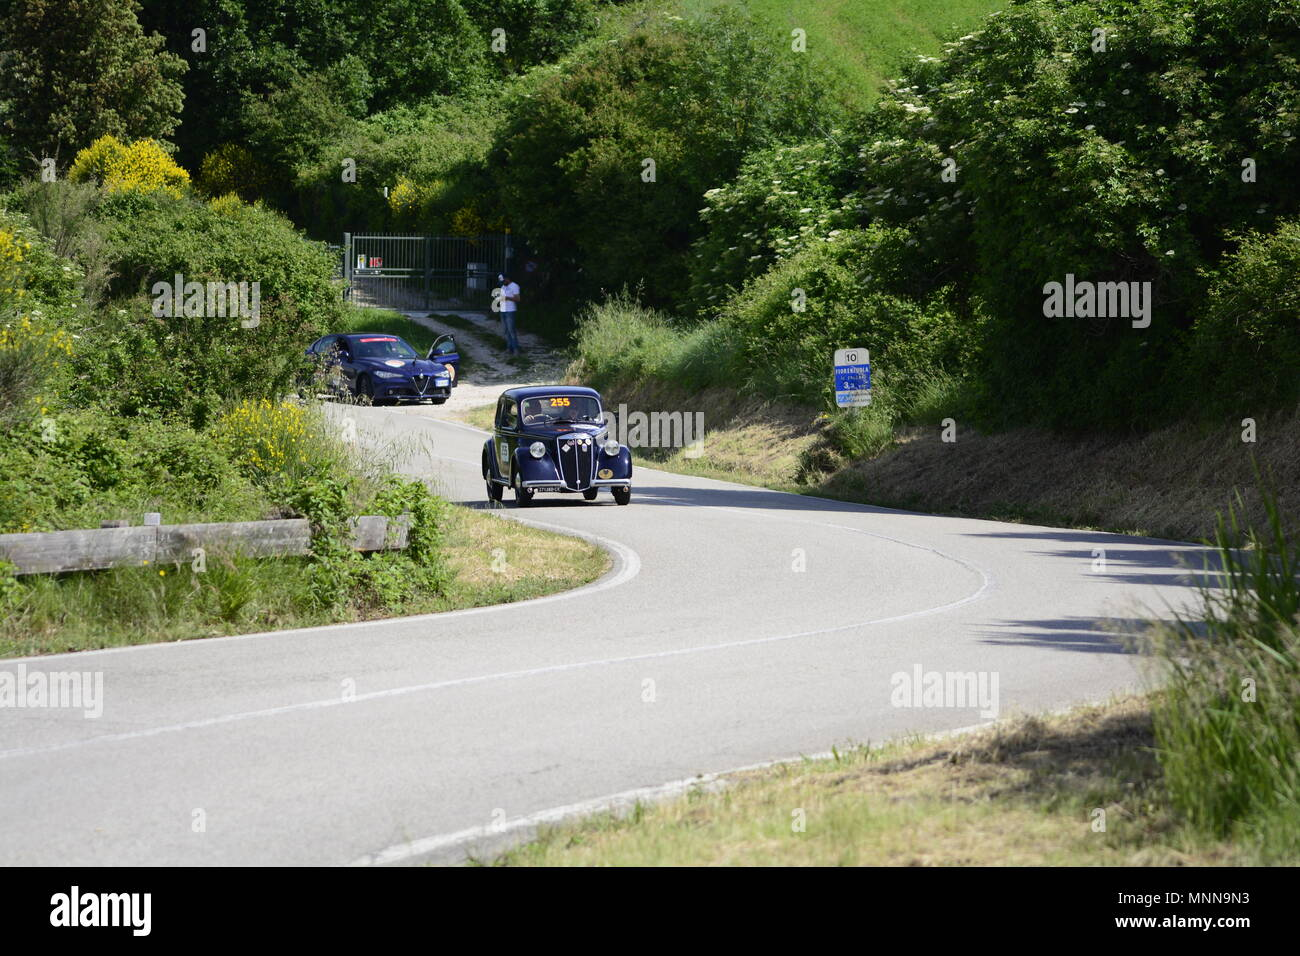 PESARO COLLE SAN BARTOLO , ITALY - MAY 17 - 2018 :  LANCIA ARDEA	1952 on an old racing car in rally Mille Miglia 2018 the famous italia - Stock Image